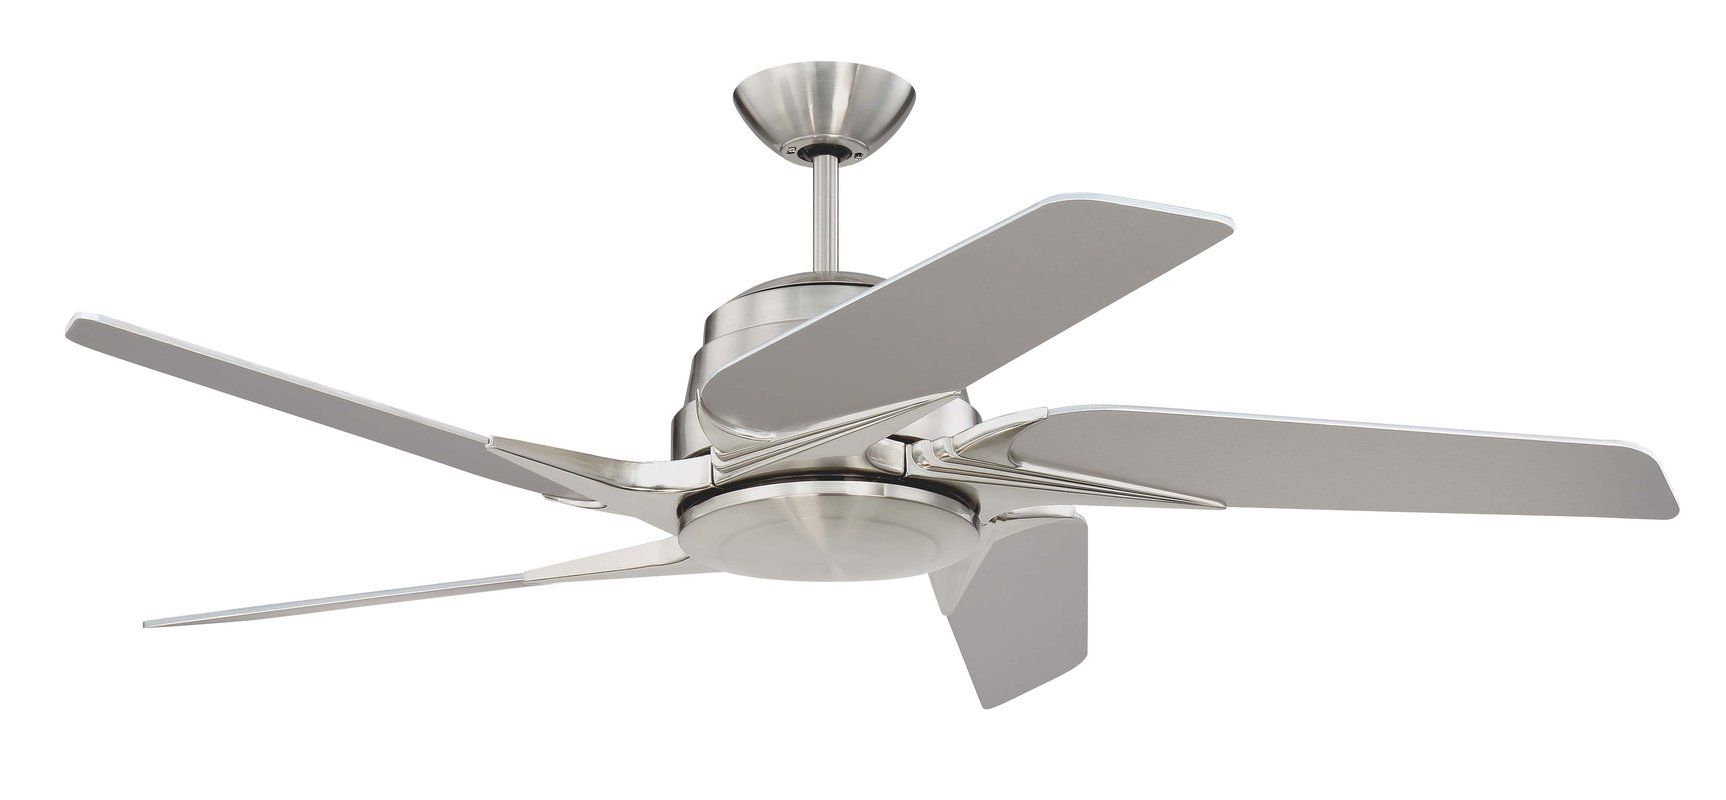 54 Fairman 5 Blade Ceiling Fan With Remote Light Kit Included With Images Ceiling Fan Modern Ceiling Fan Ceiling Fan With Remote